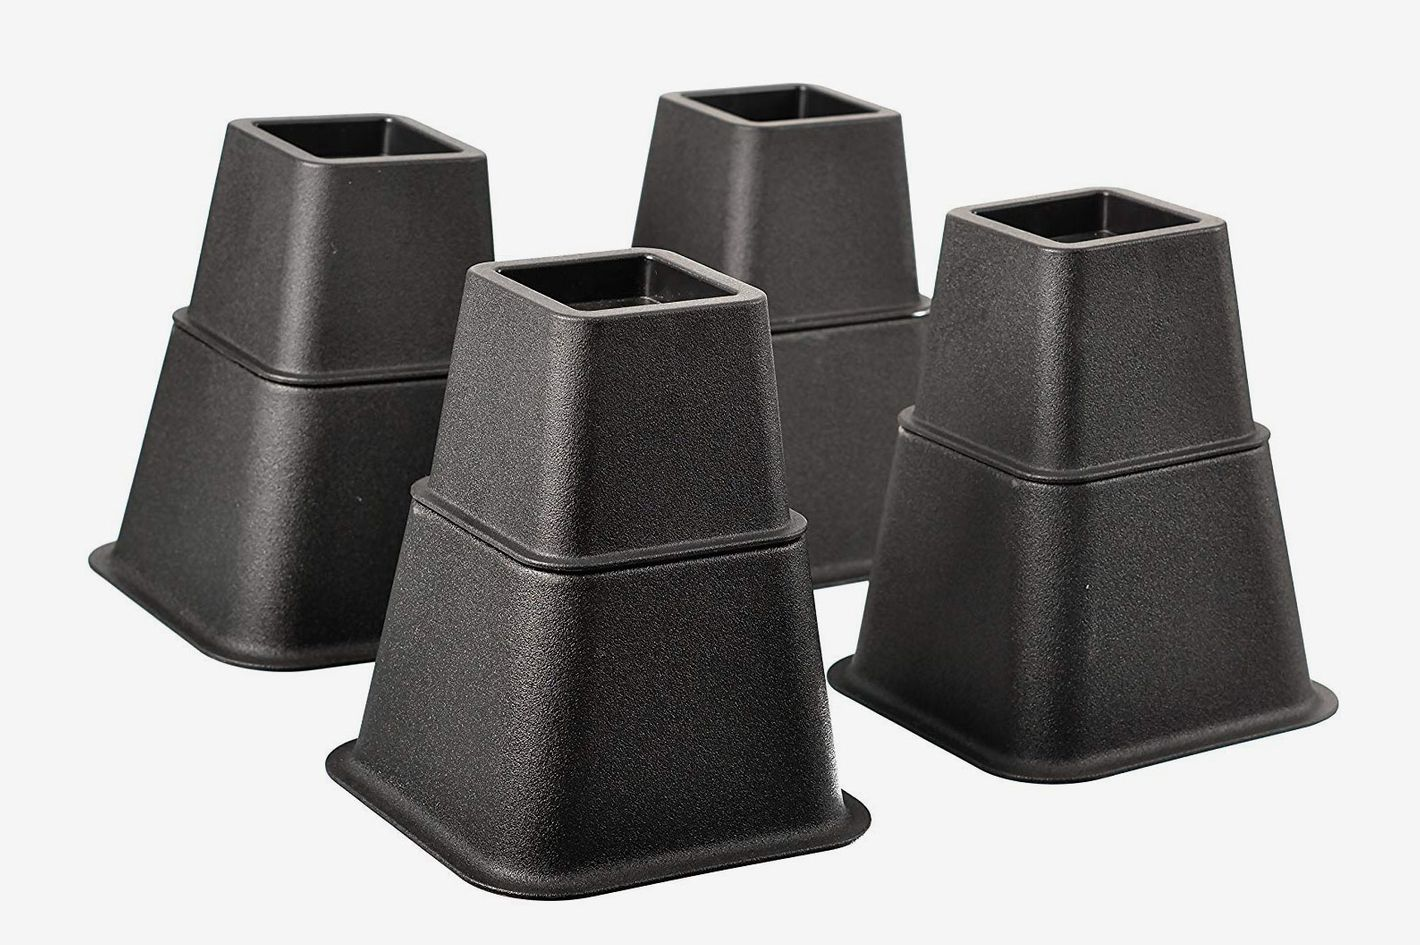 Home-it Adjustable Bed Risers 4-Pack (3in, 5in, 8in)